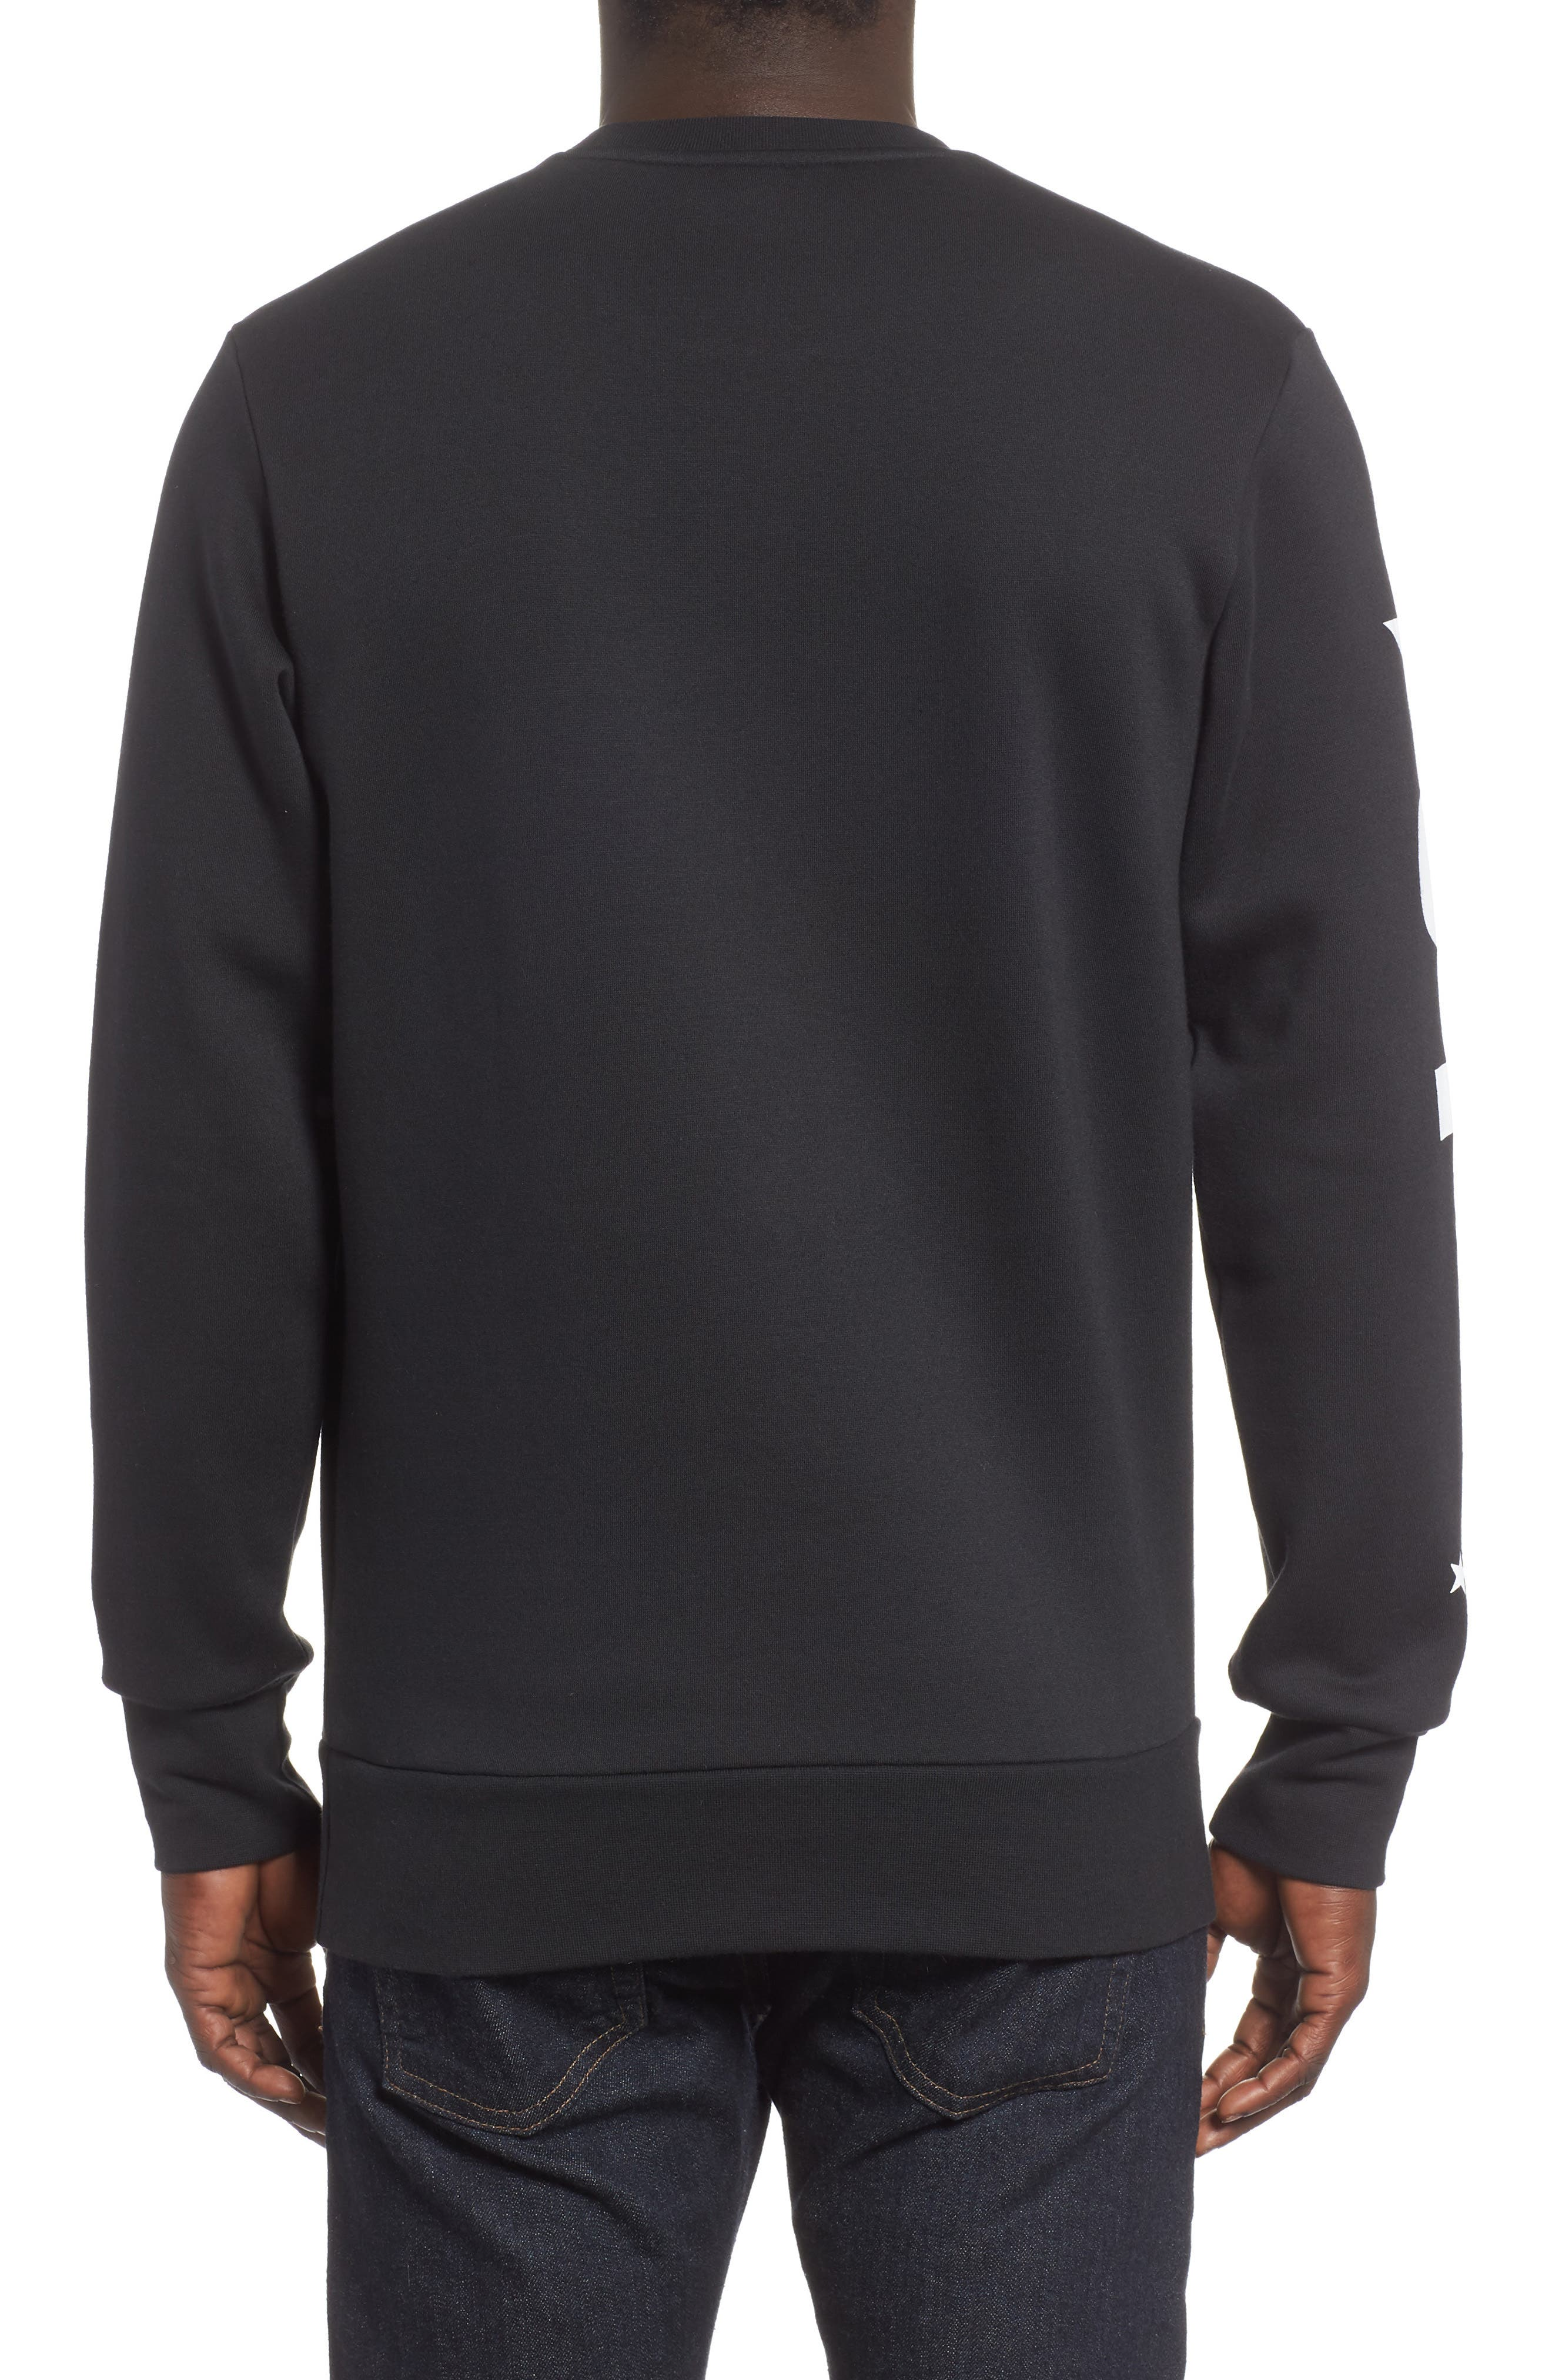 ADIDAS, International Regular Fit Sweatshirt, Alternate thumbnail 2, color, BLACK